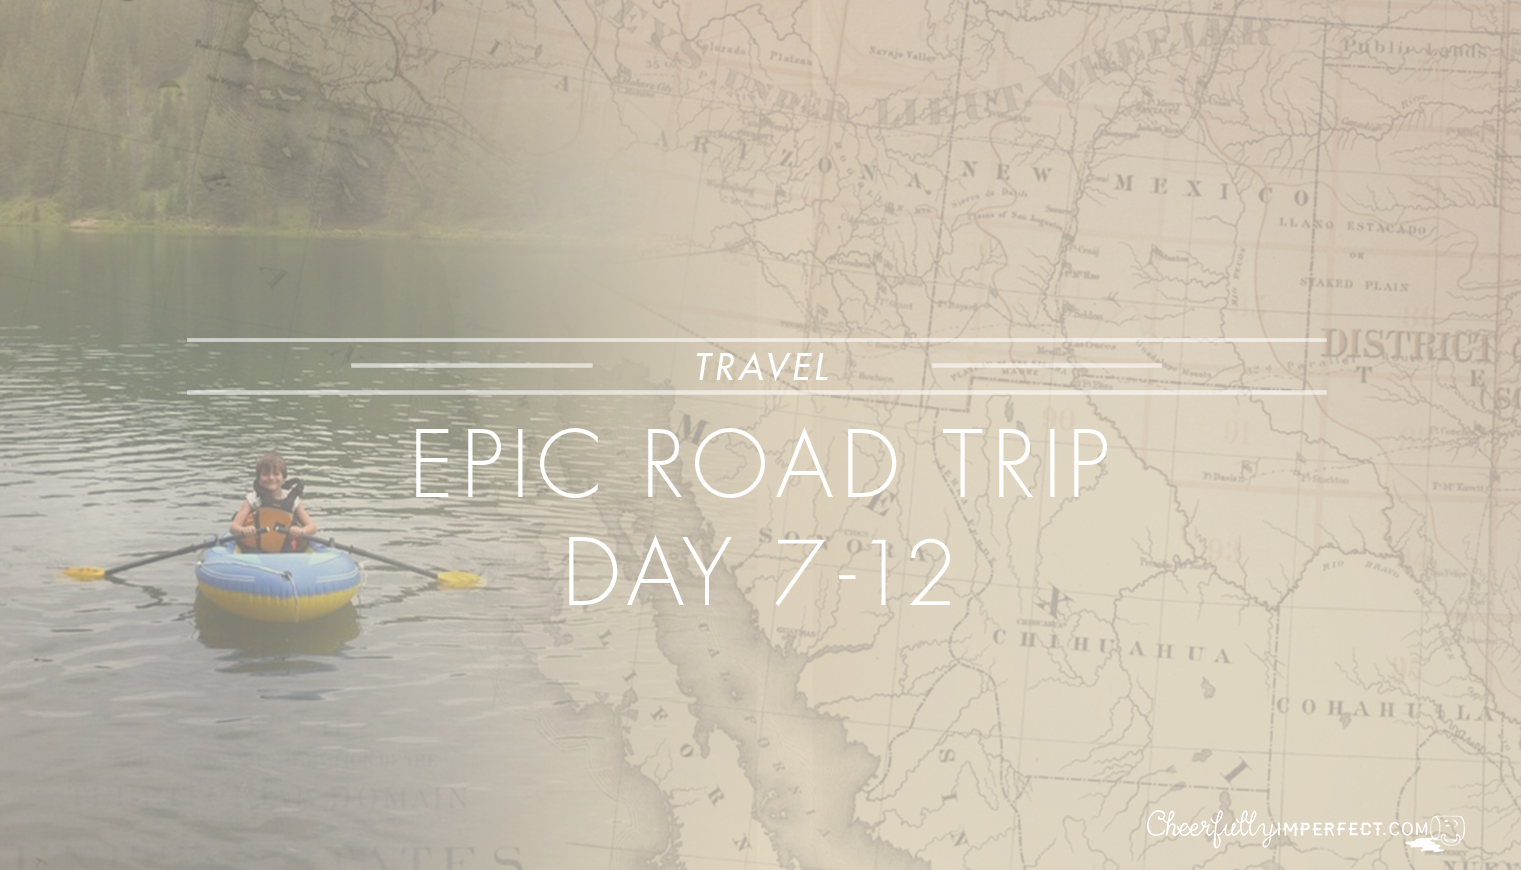 Epic Road Trip days 7-12, Alberta, Canada